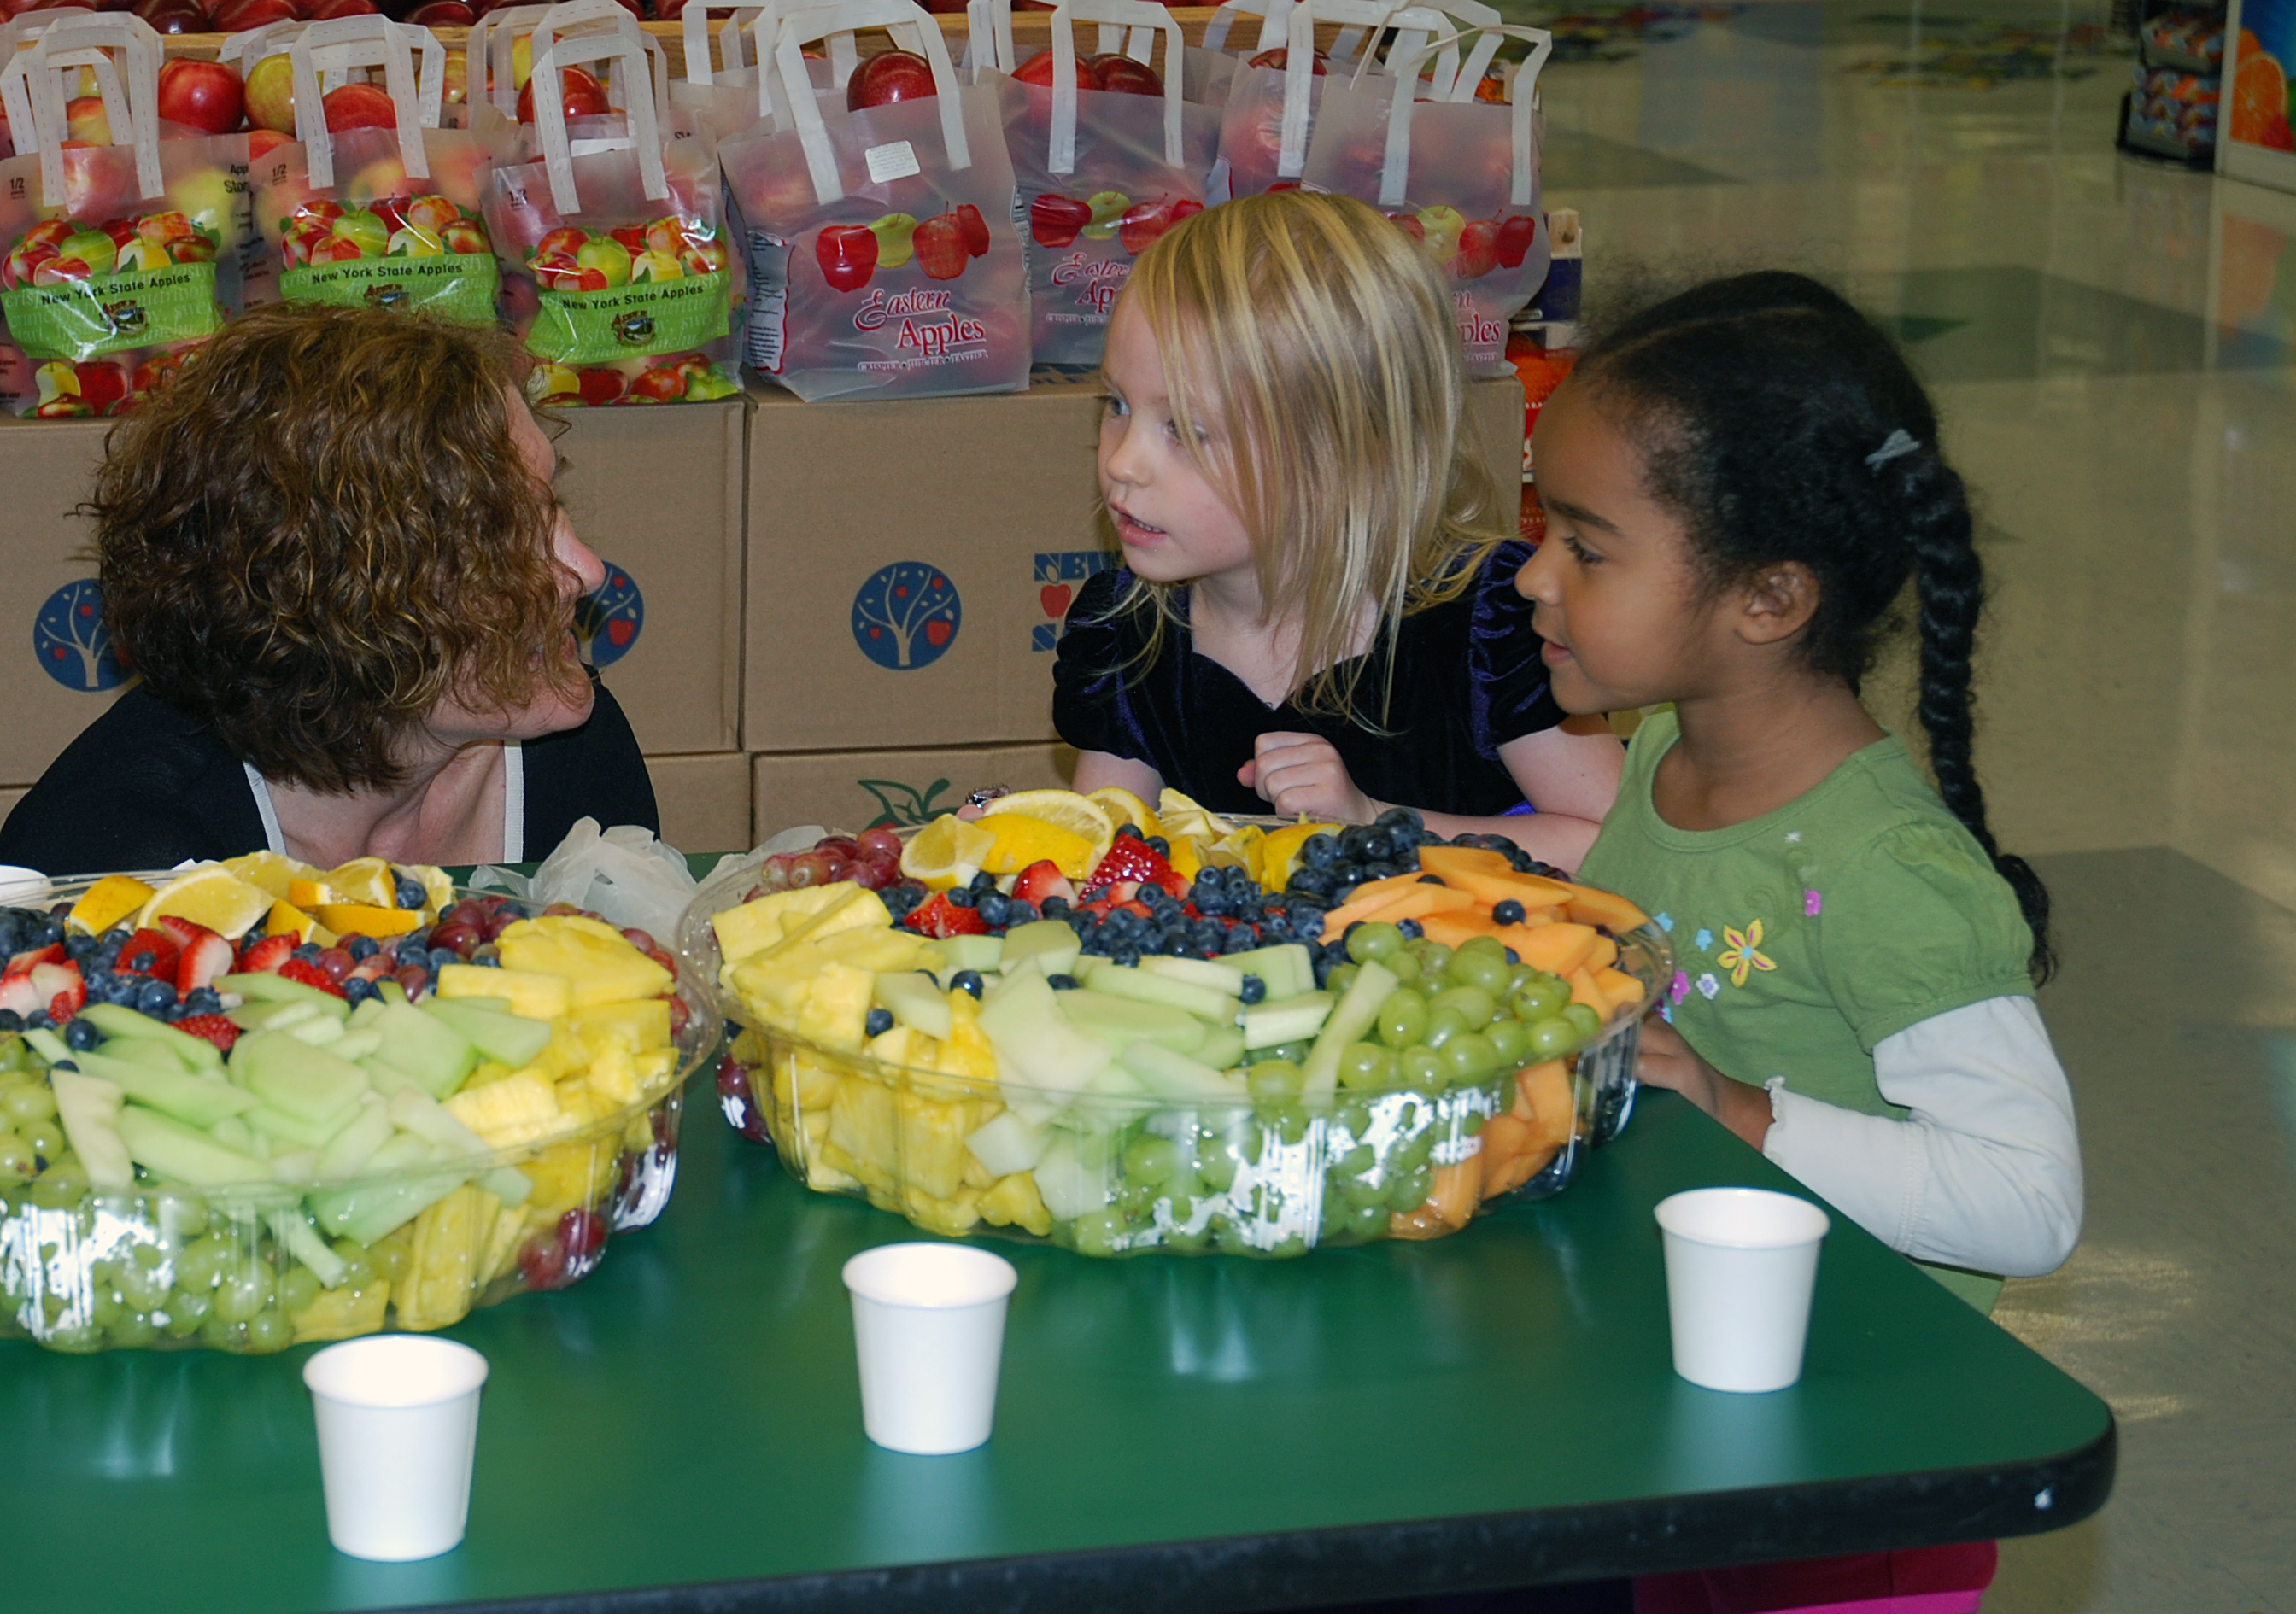 Why Should Kids Eat Fruits And Veggies